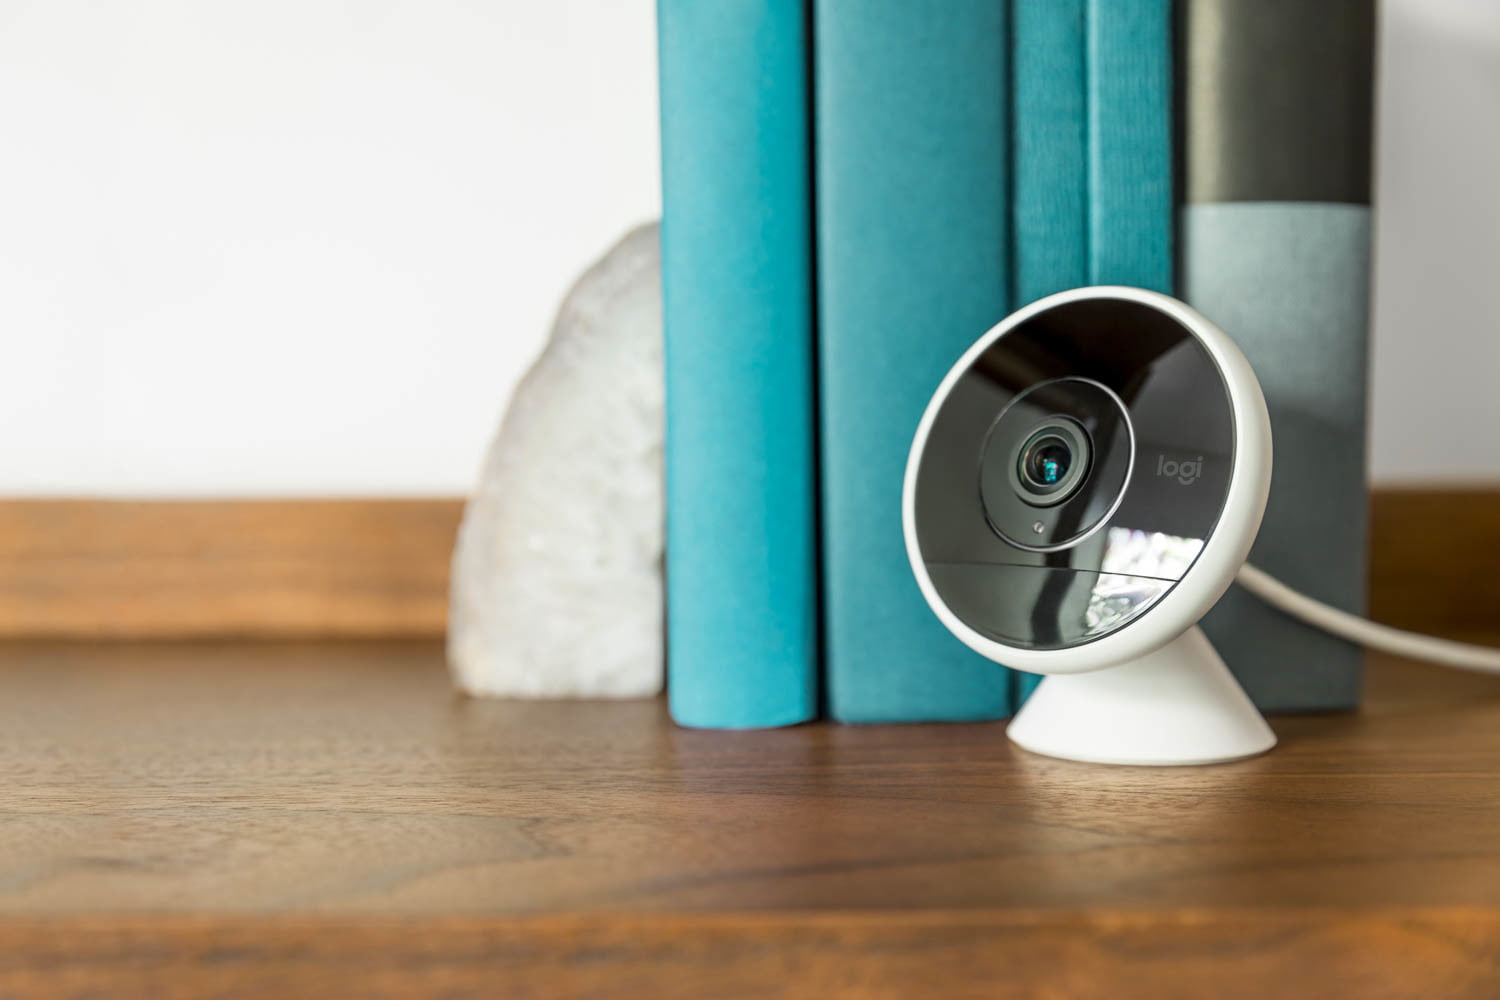 6242a0a0f4f Logitech's versatile Circle 2 security camera can monitor indoors or  outdoors